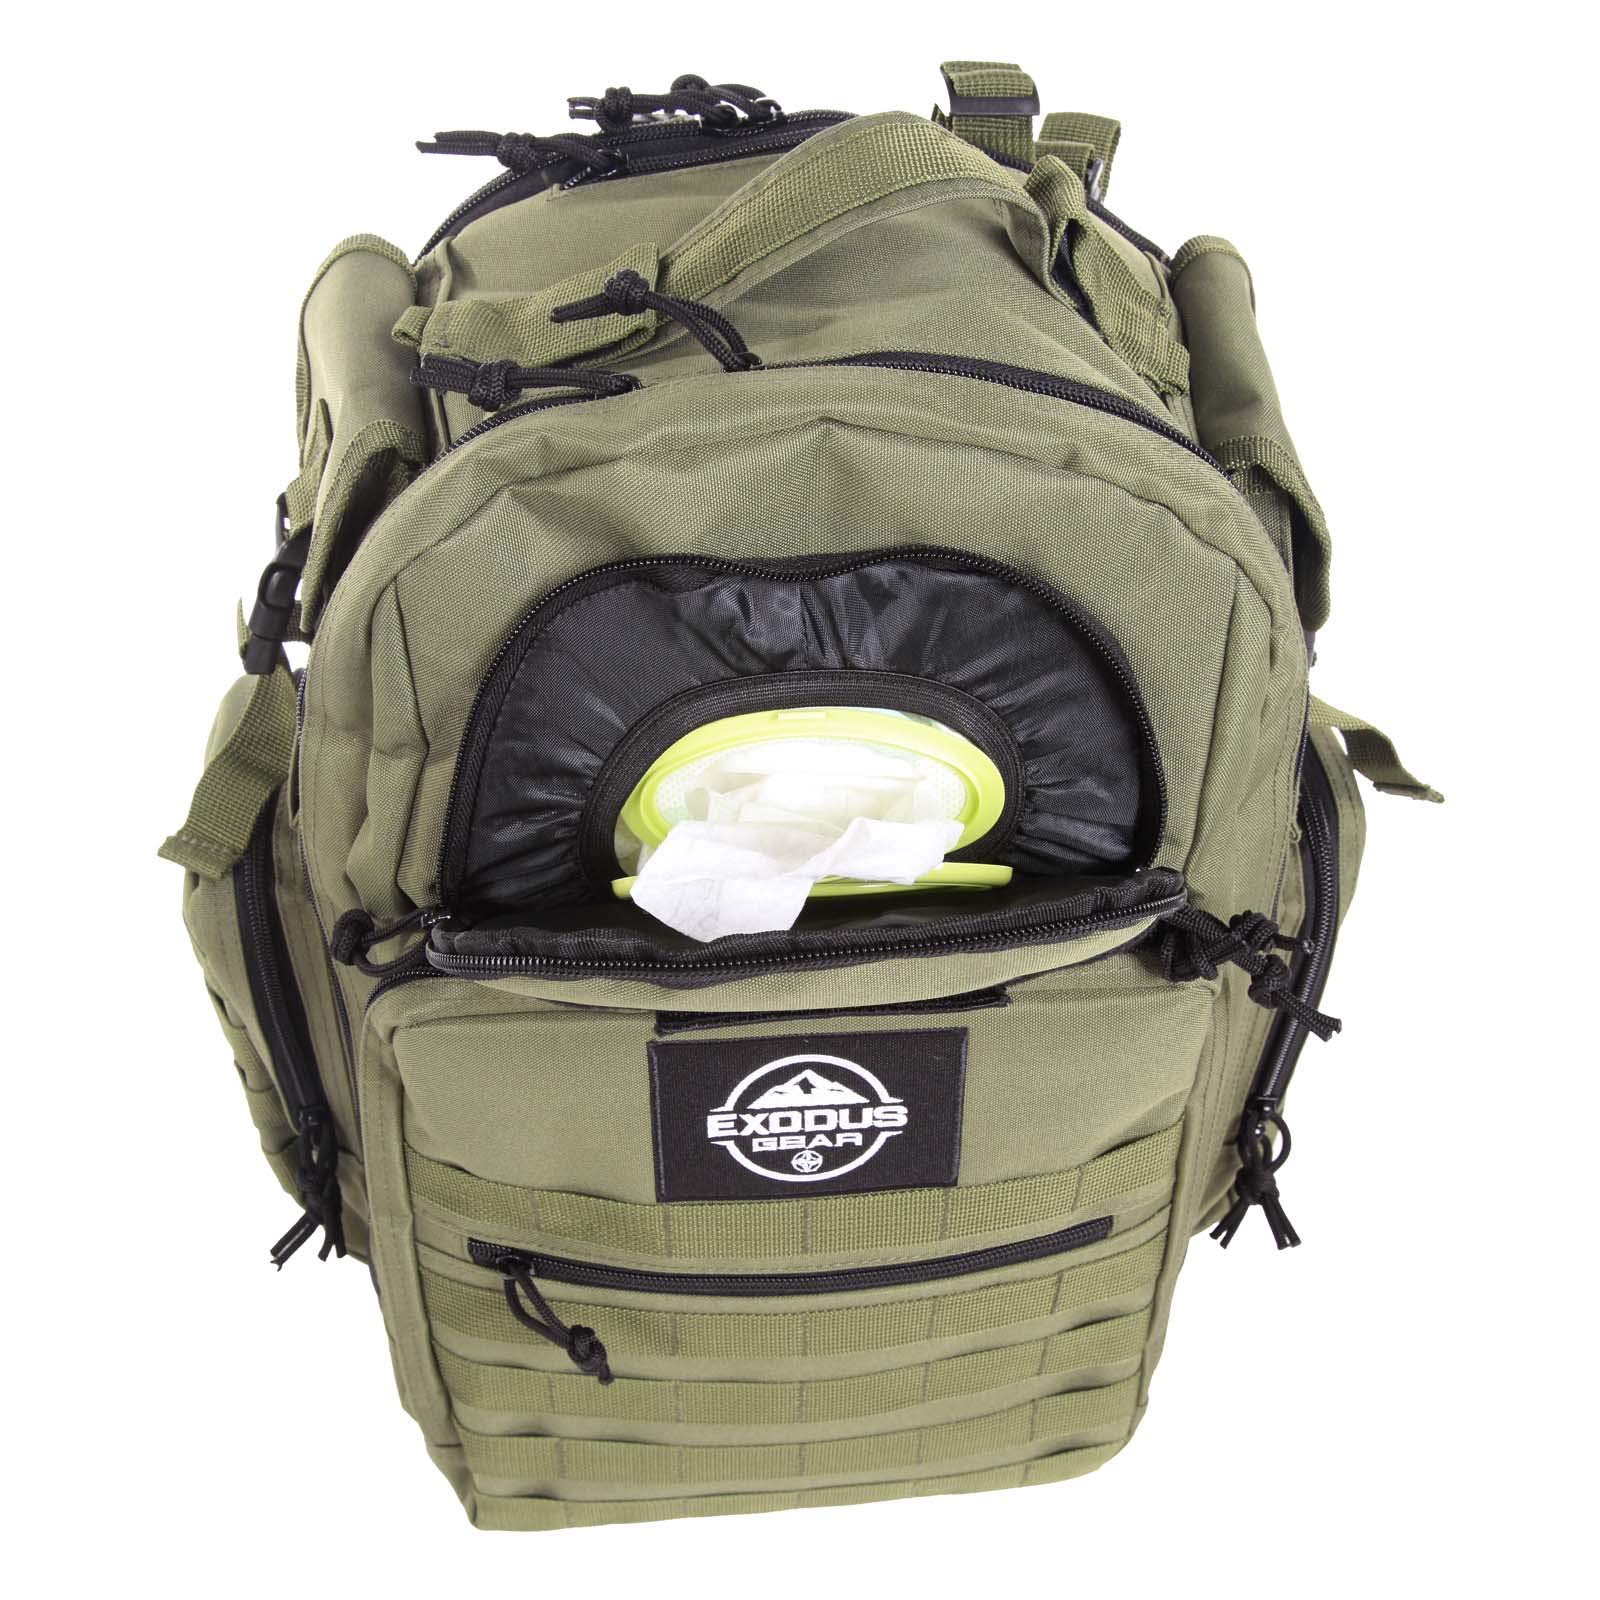 Diaper Bag Backpack by Exodus Gear + Adventure Diaper Bag with Changing Pad + Daddy Diaper Bag for Men and Woman + Hiking Diaper Bag + Dad Diaper Bag + Unisex Diaper Bag + Baby Care (Green) by Exodus Gear (Image #3)